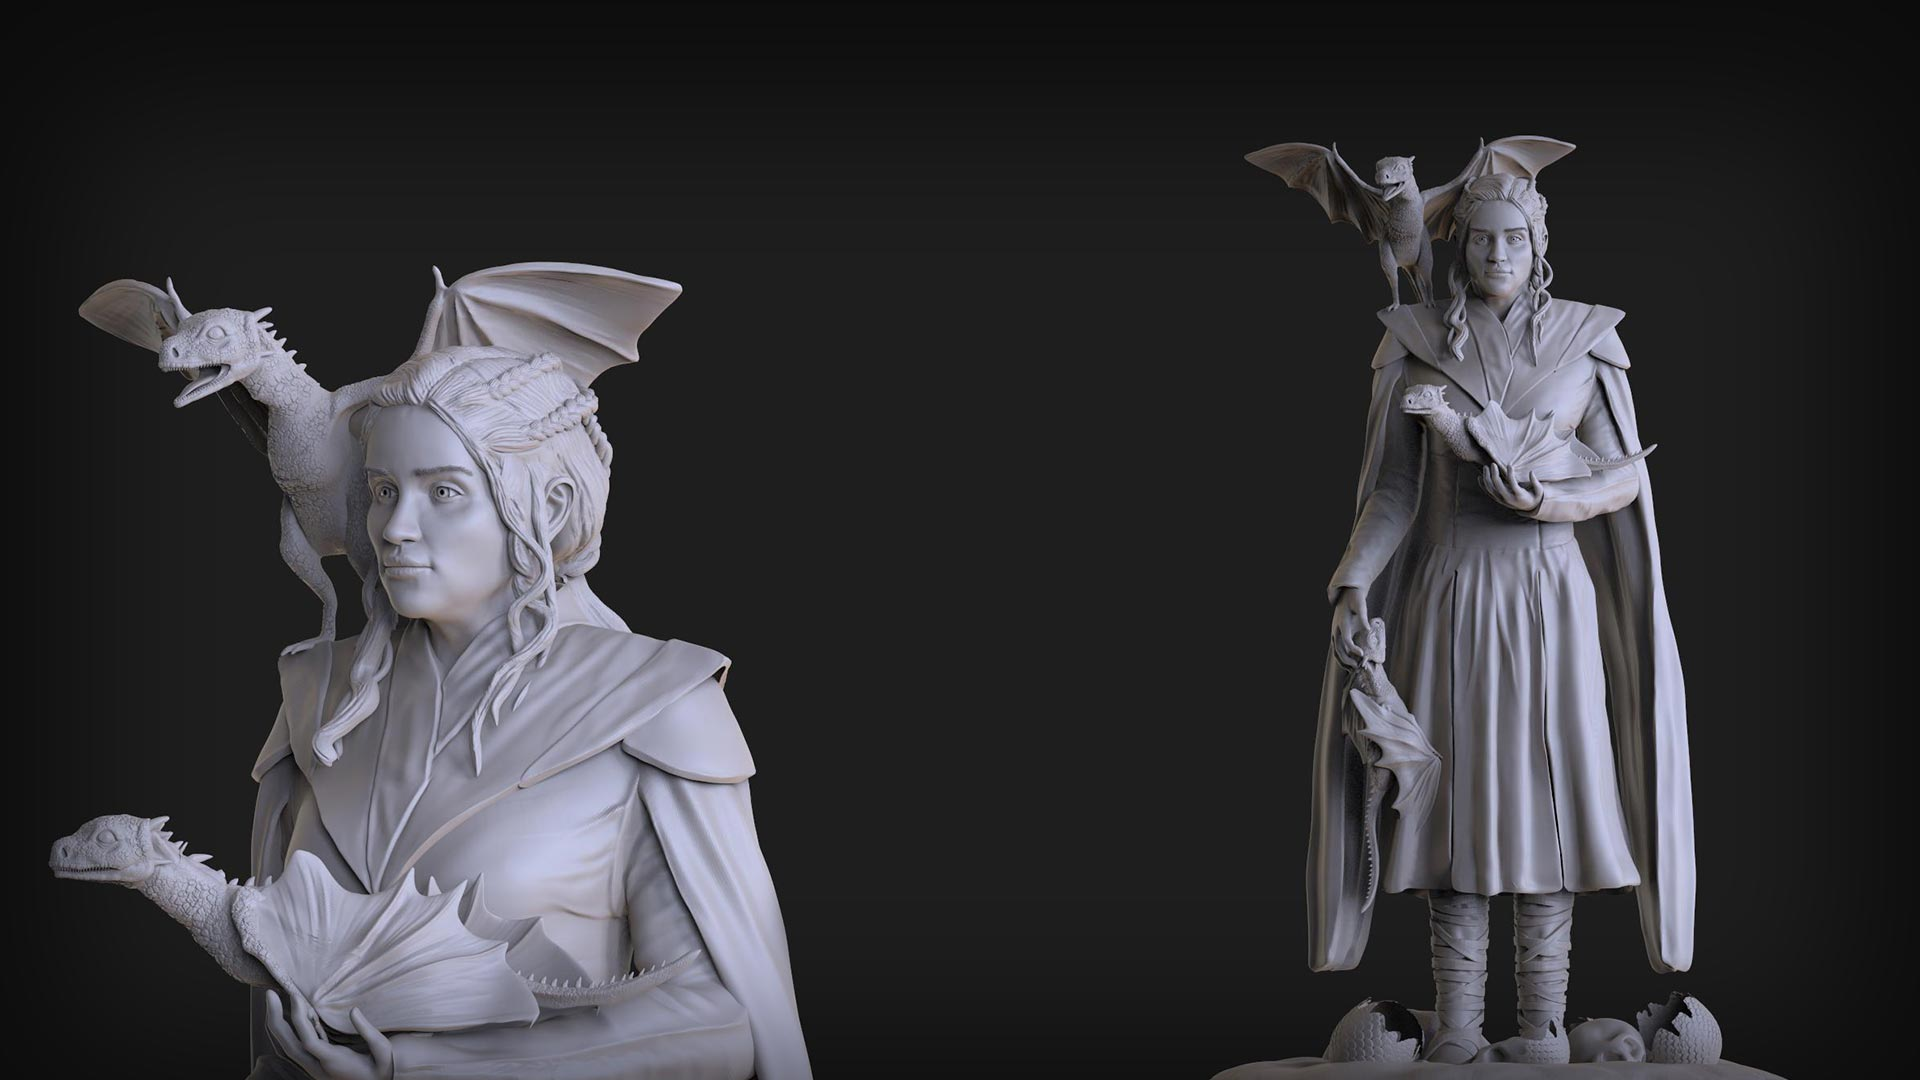 3D Sculpt for 3D Game Art Outsourcing and External Game Development